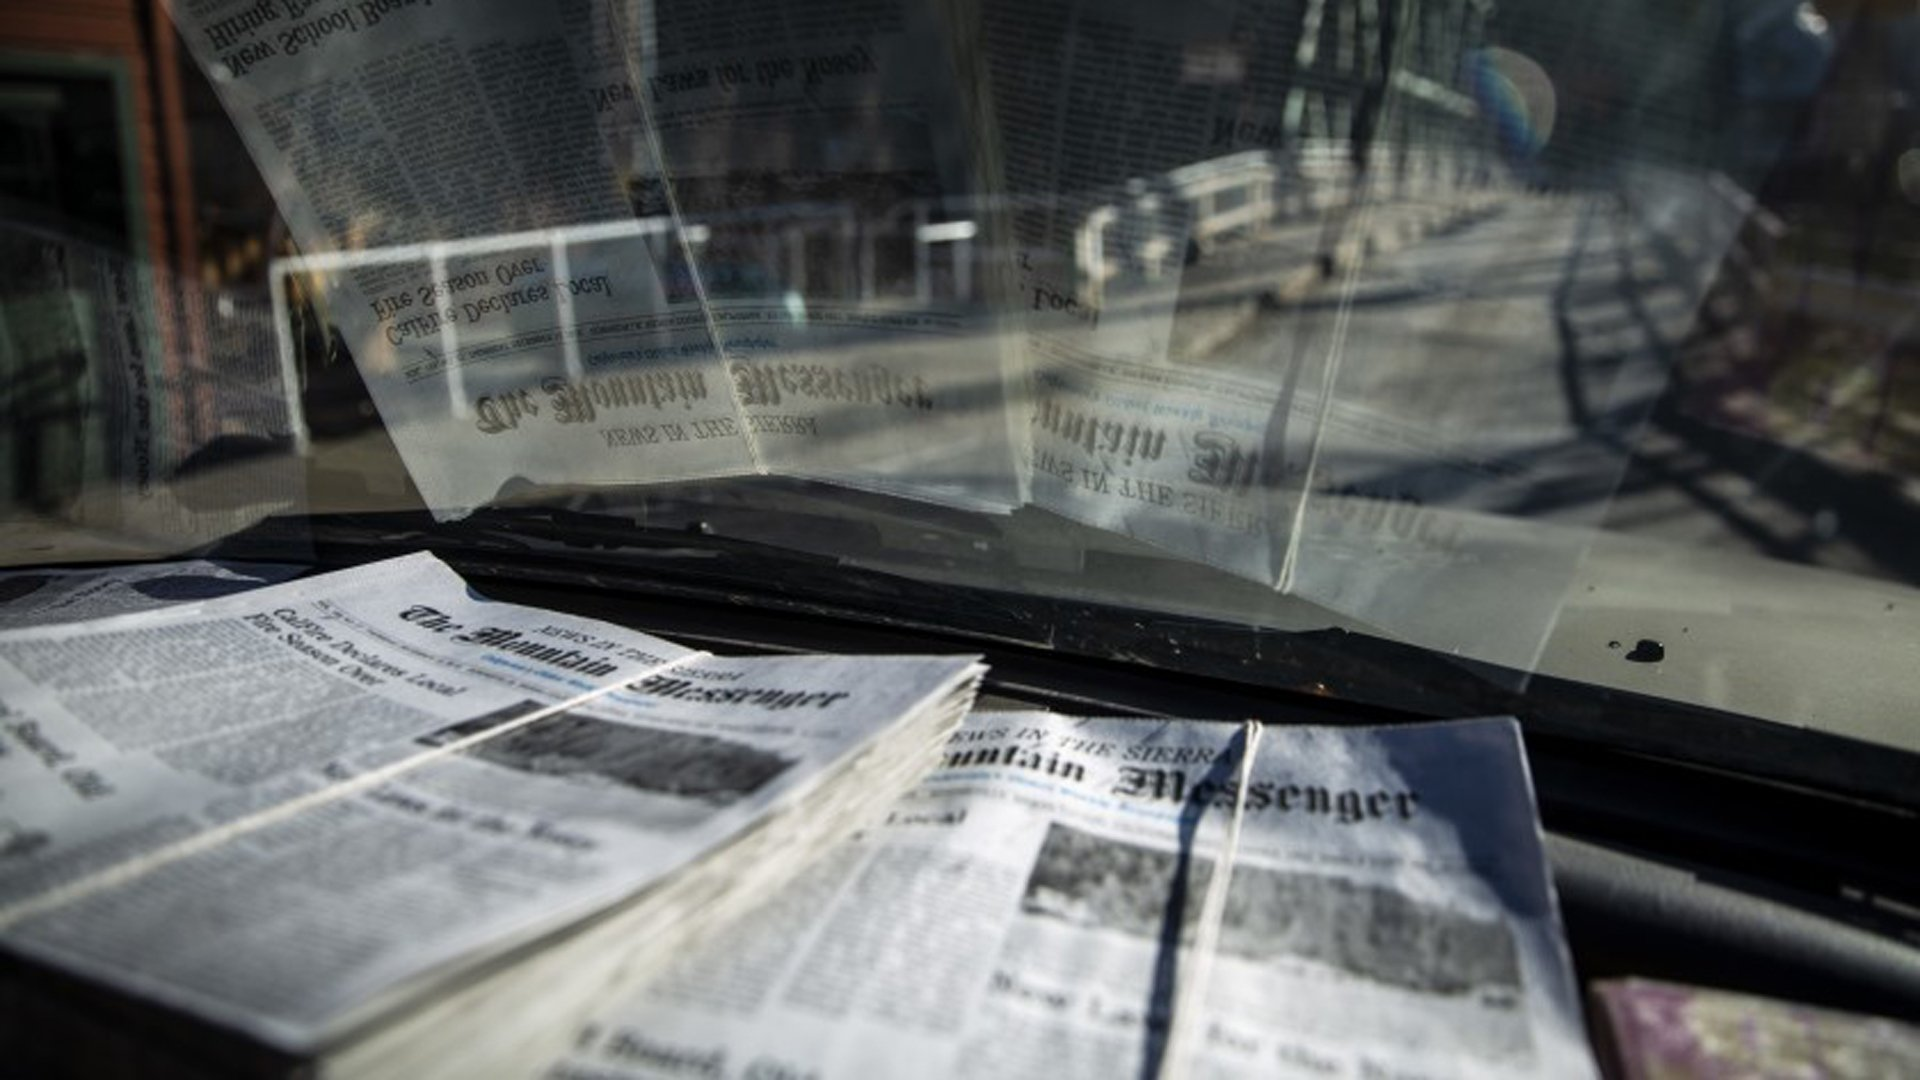 Copies of the Mountain Messenger.(Credit: Kent Nishimura / Los Angeles Times)